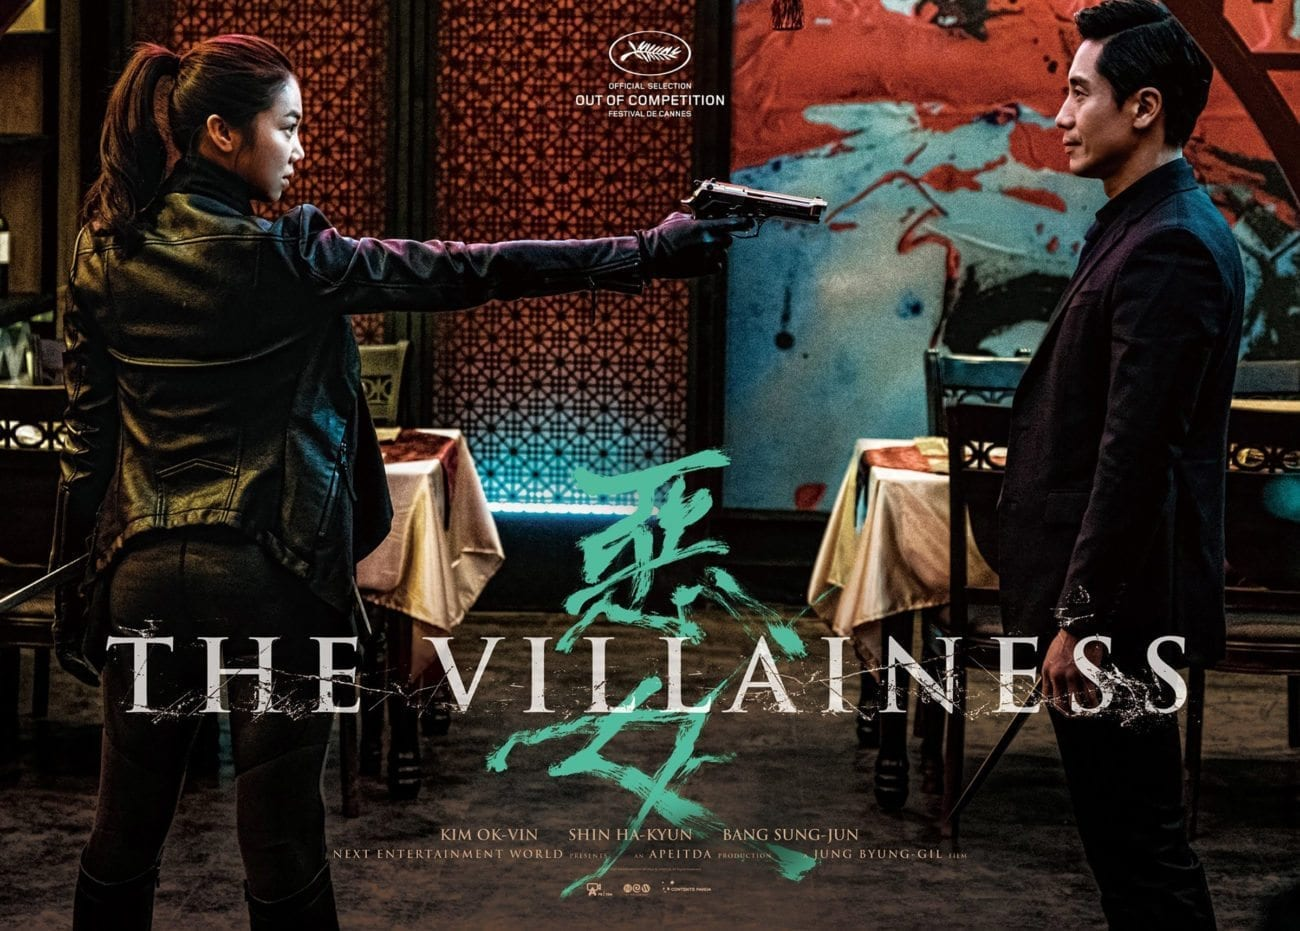 South Korean director Byung-gil Jung's 'The Villainess' has been announced as the opening film for the 2017 Fantasia International Film Festival.